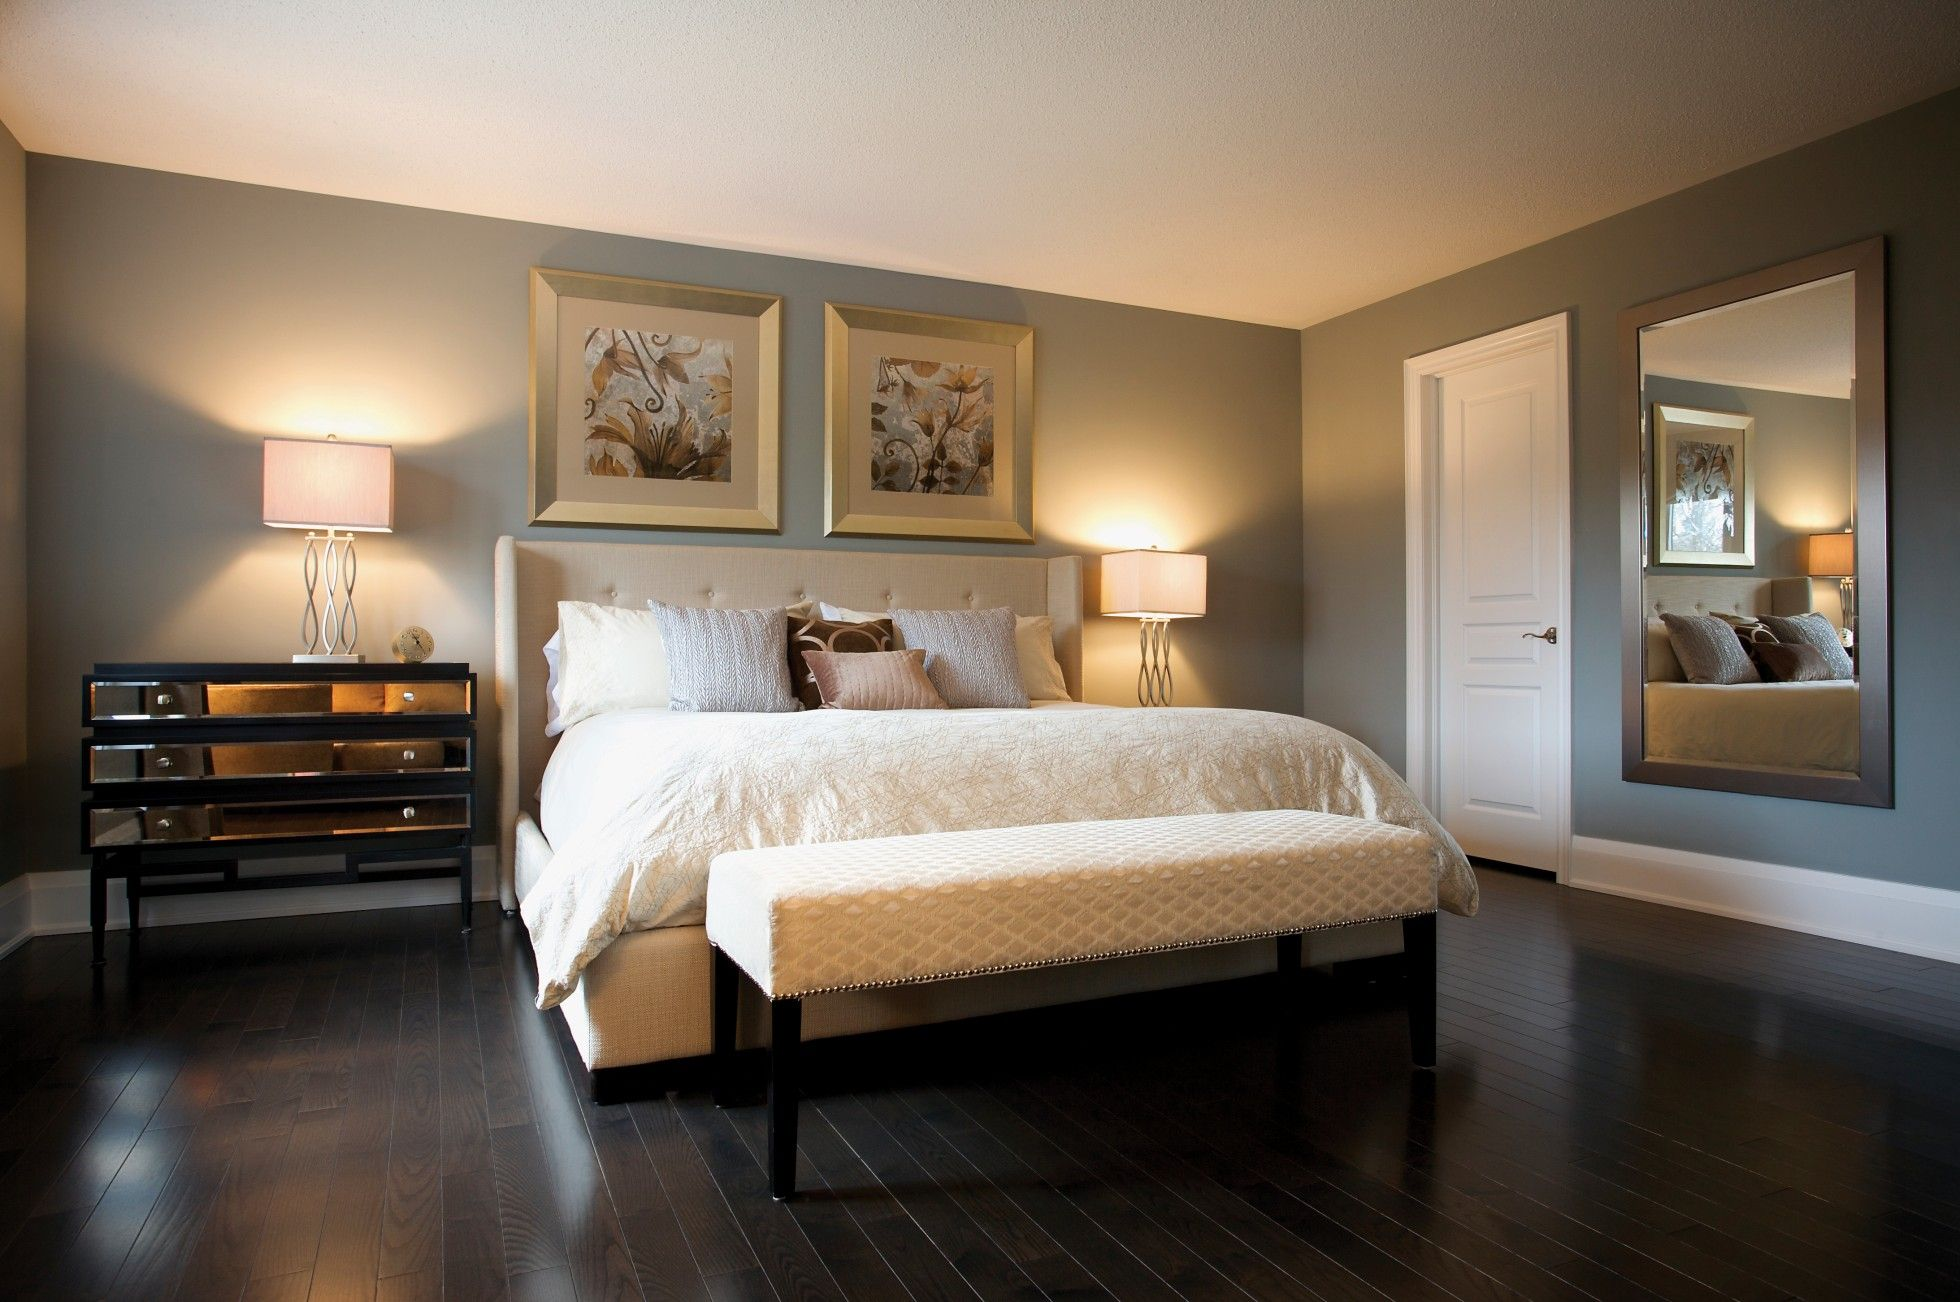 Award winning home condo staging decorating toronto for Bedroom designs king size bed